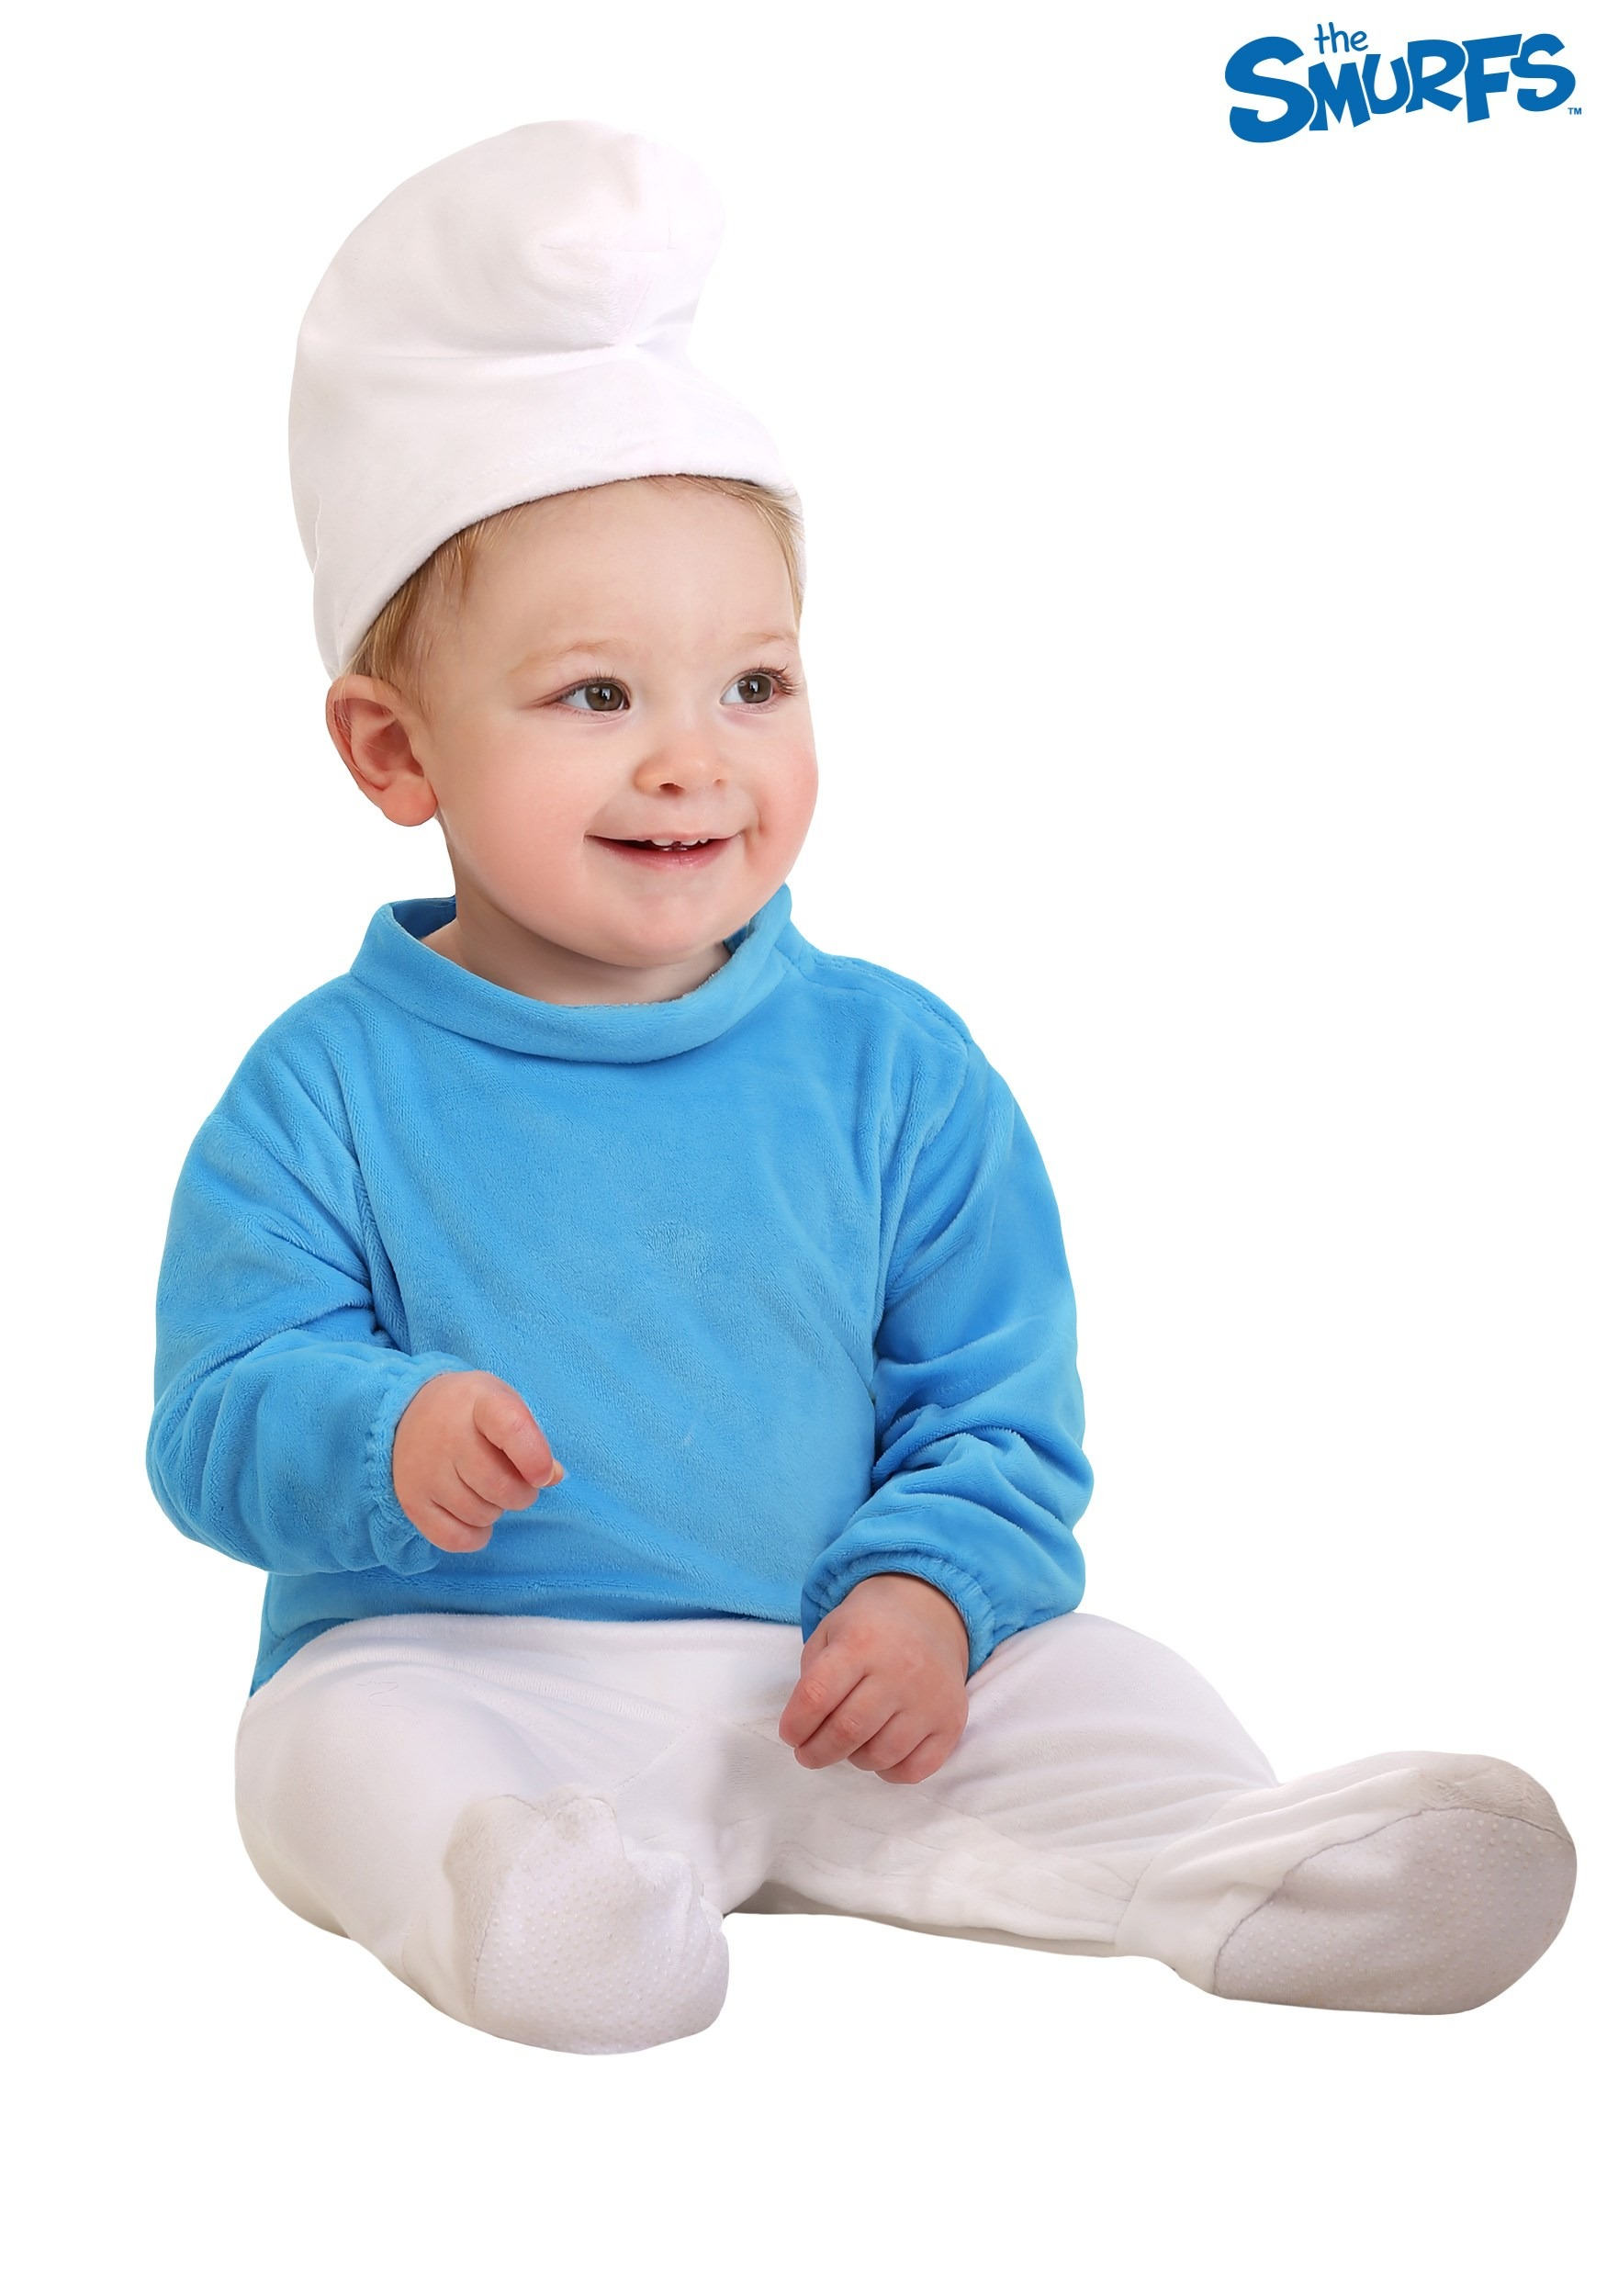 The Smurfs Smurf Infant Toddler Child Cute Costume